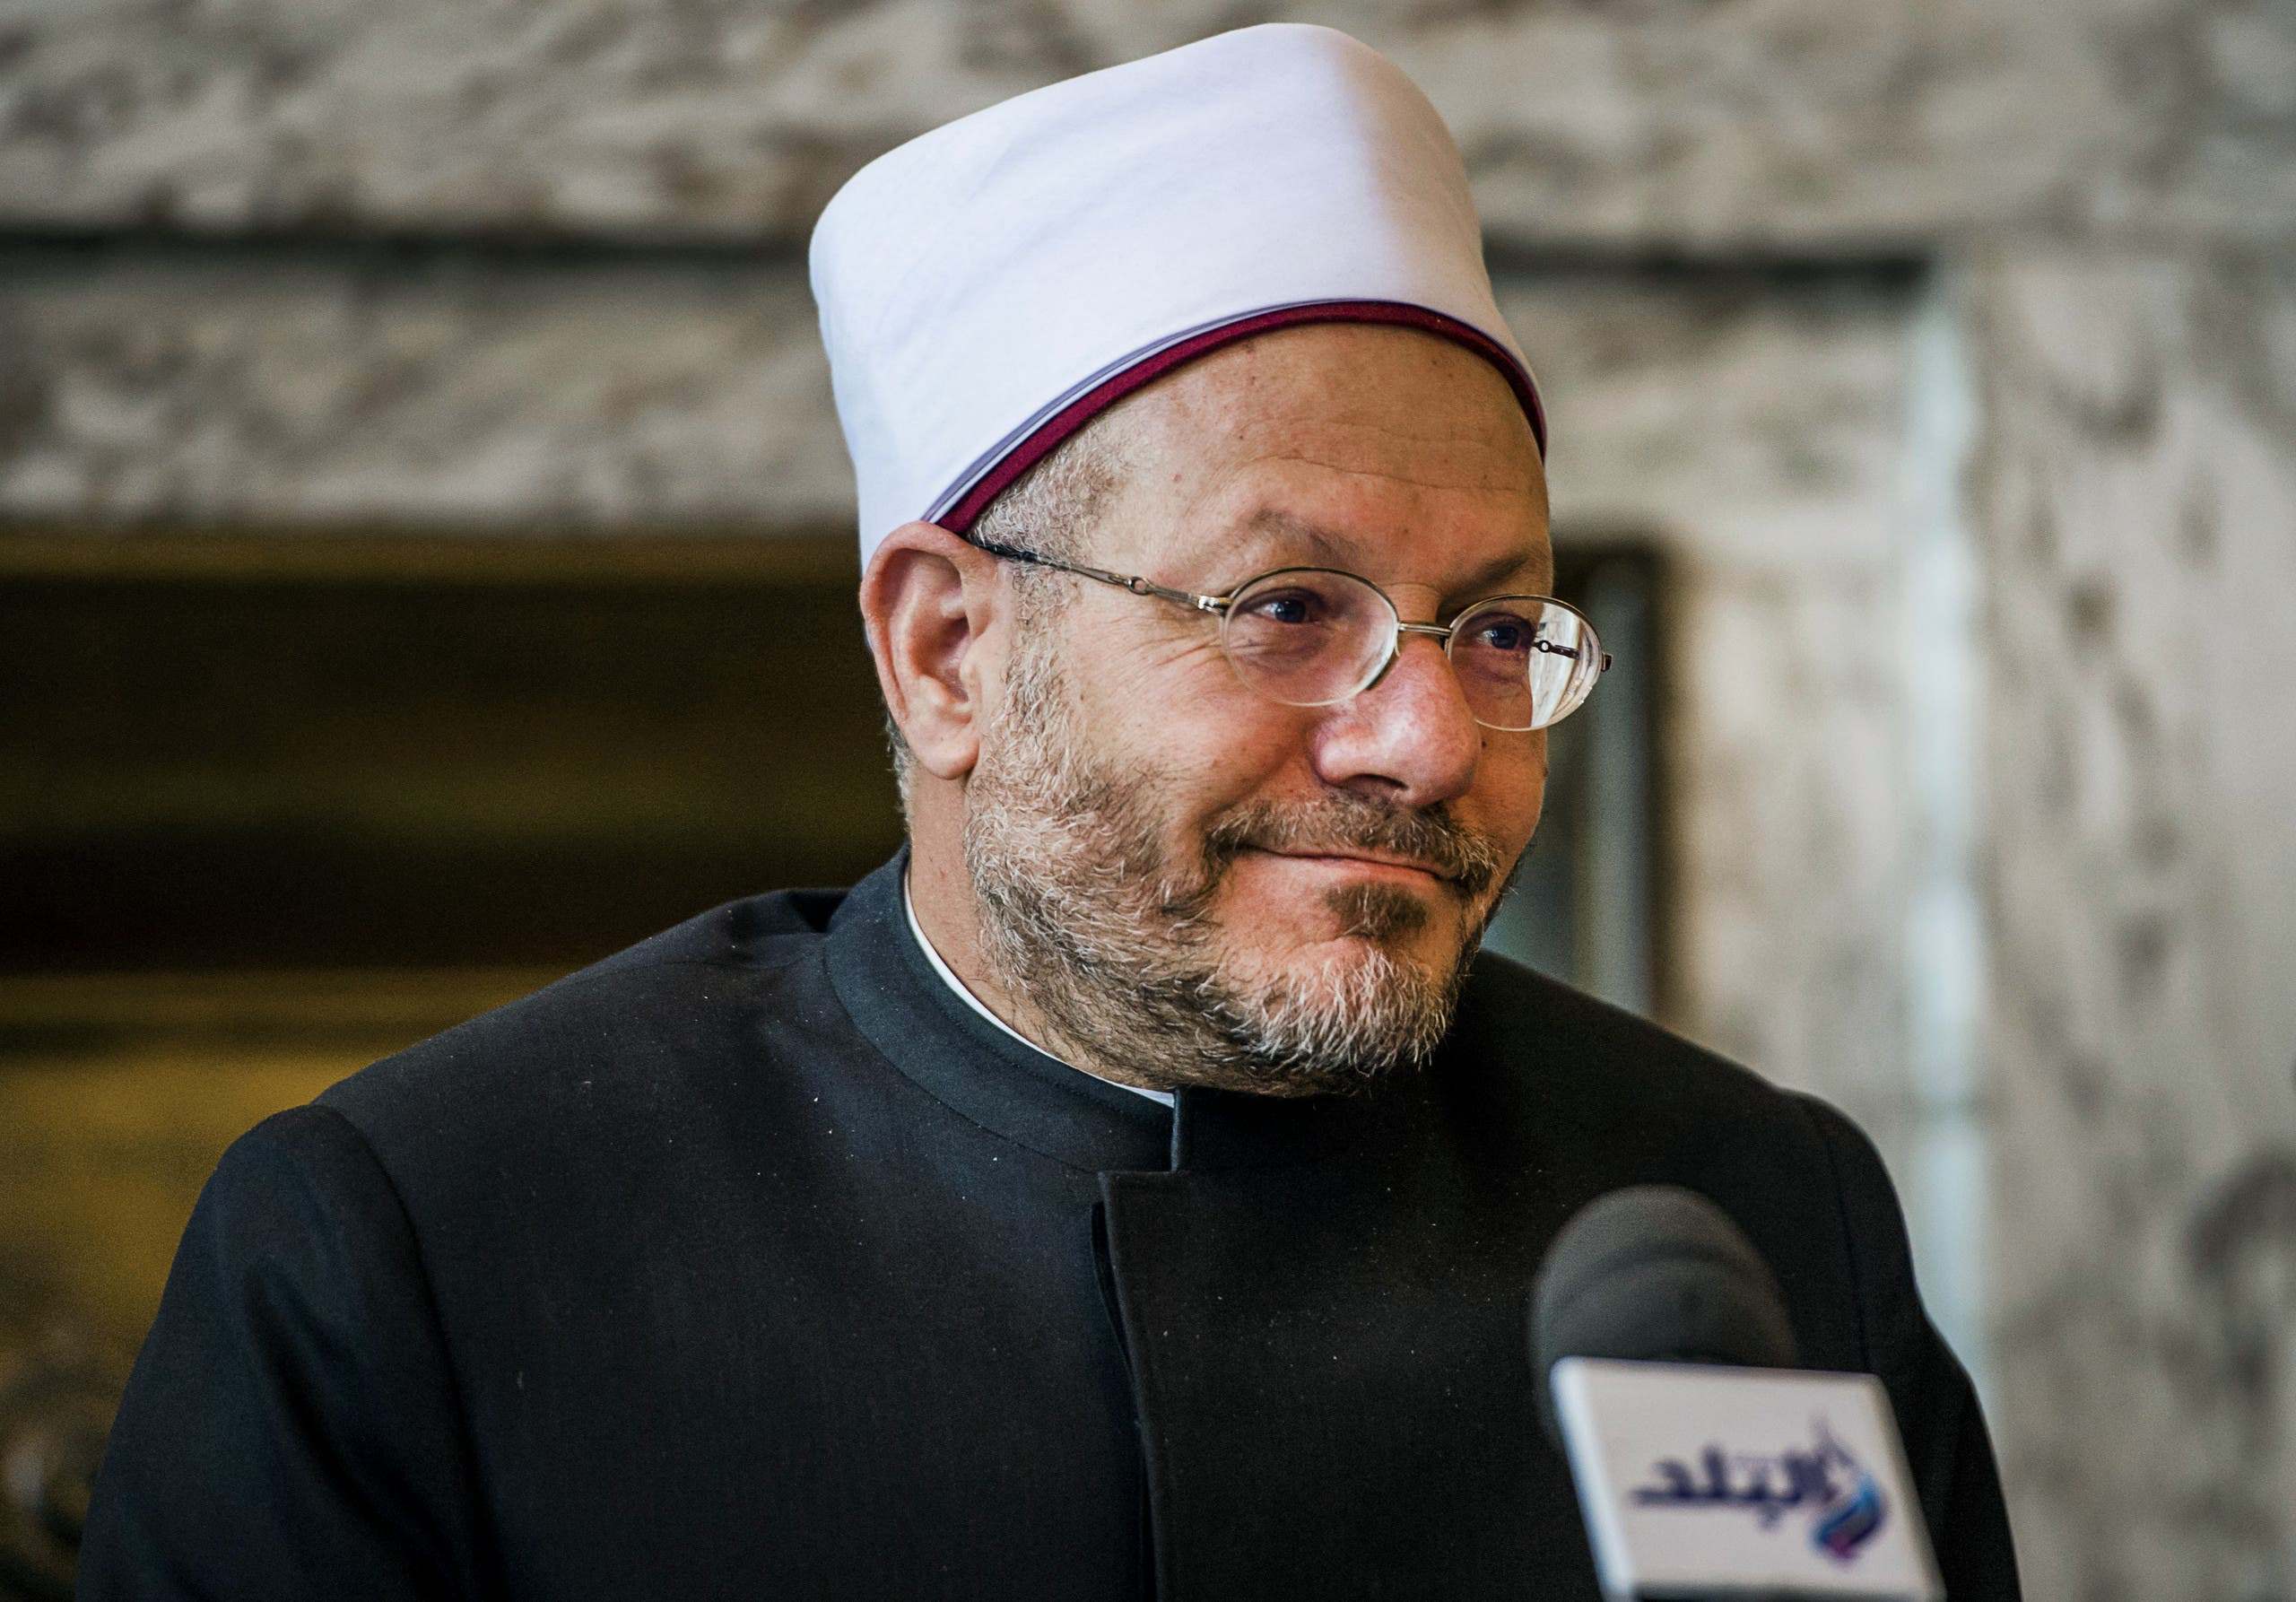 Sheikh Shawki Allam the Grand Mufti of Egypt شوقي علام علّام إفتاء افتاء الافتاء الإفتاء مصر